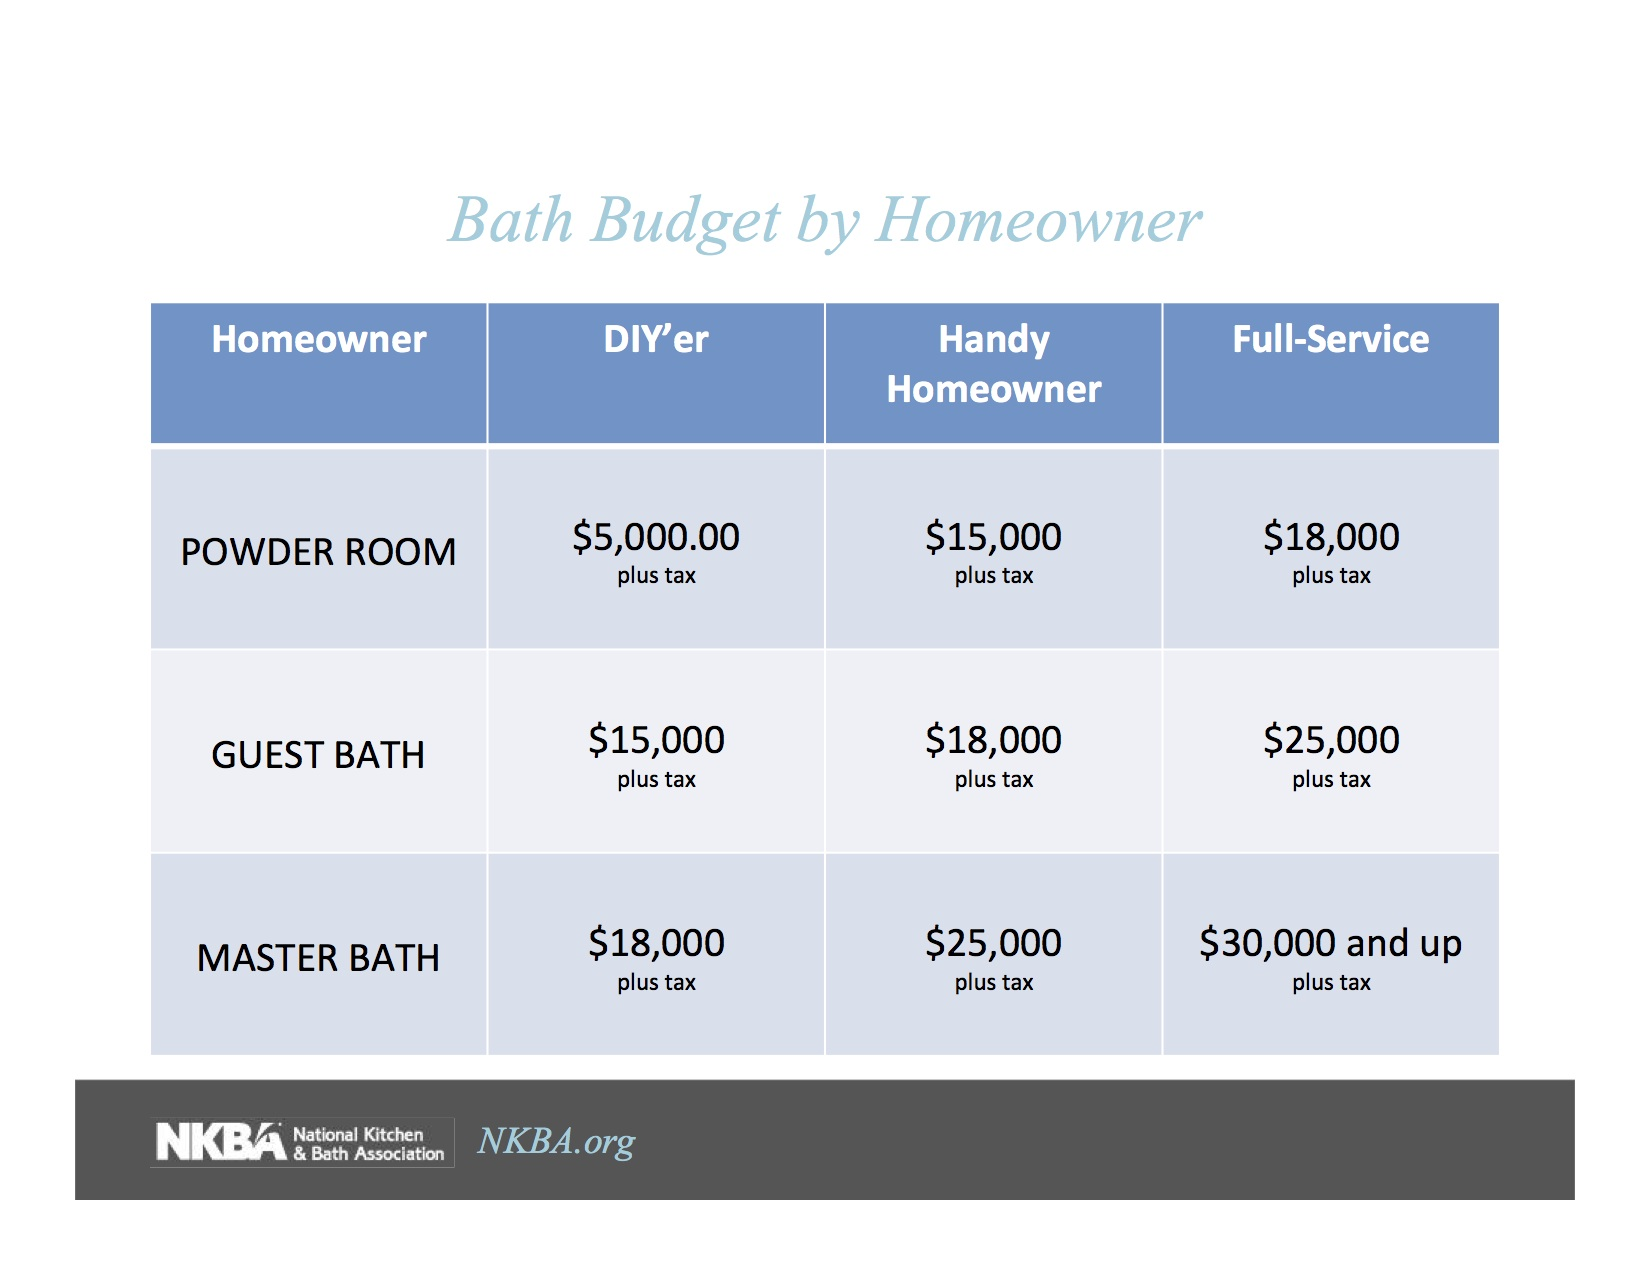 Bathroom Budgets broken down again by homeowner and by project size. Yes, bathrooms are more expensive than you'd think because there's more stuff behind the walls.